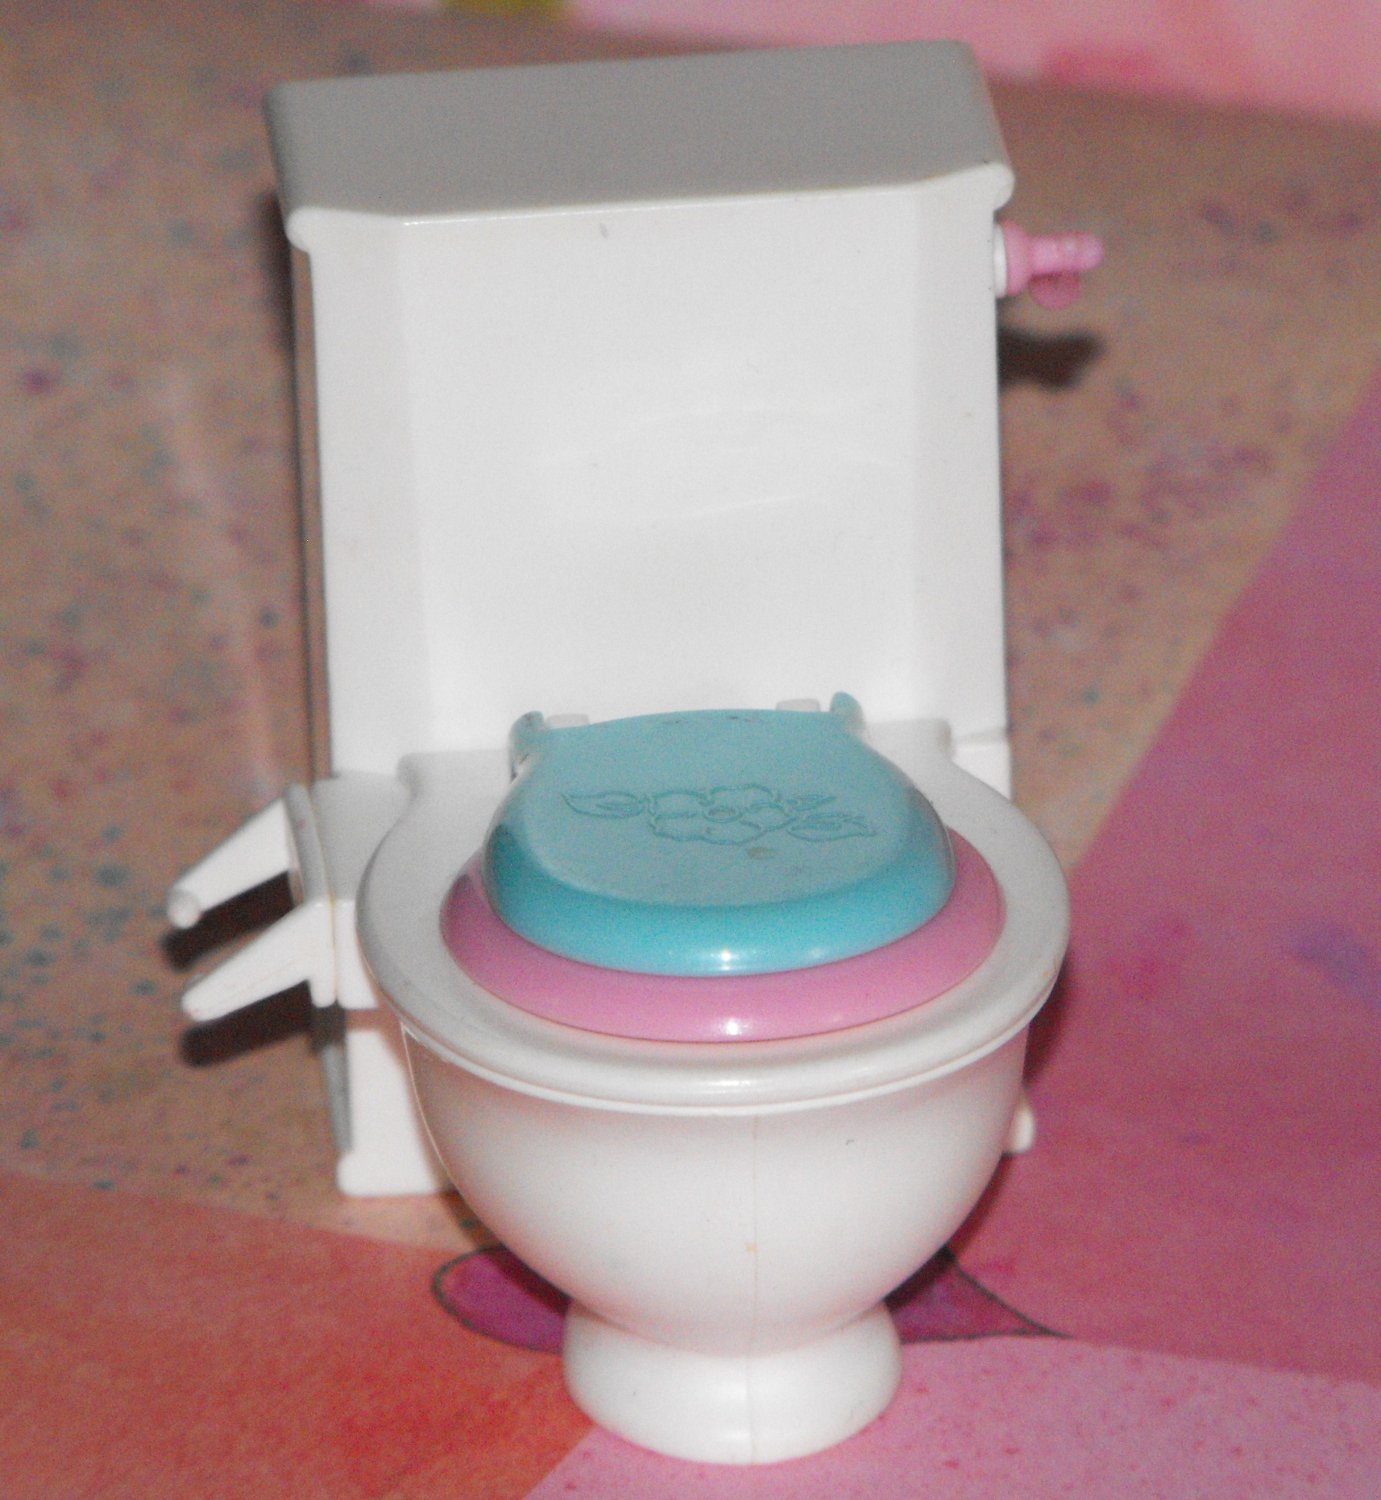 *8/15*SOLD~Matell Potty Training Kelly 1985 TOILET